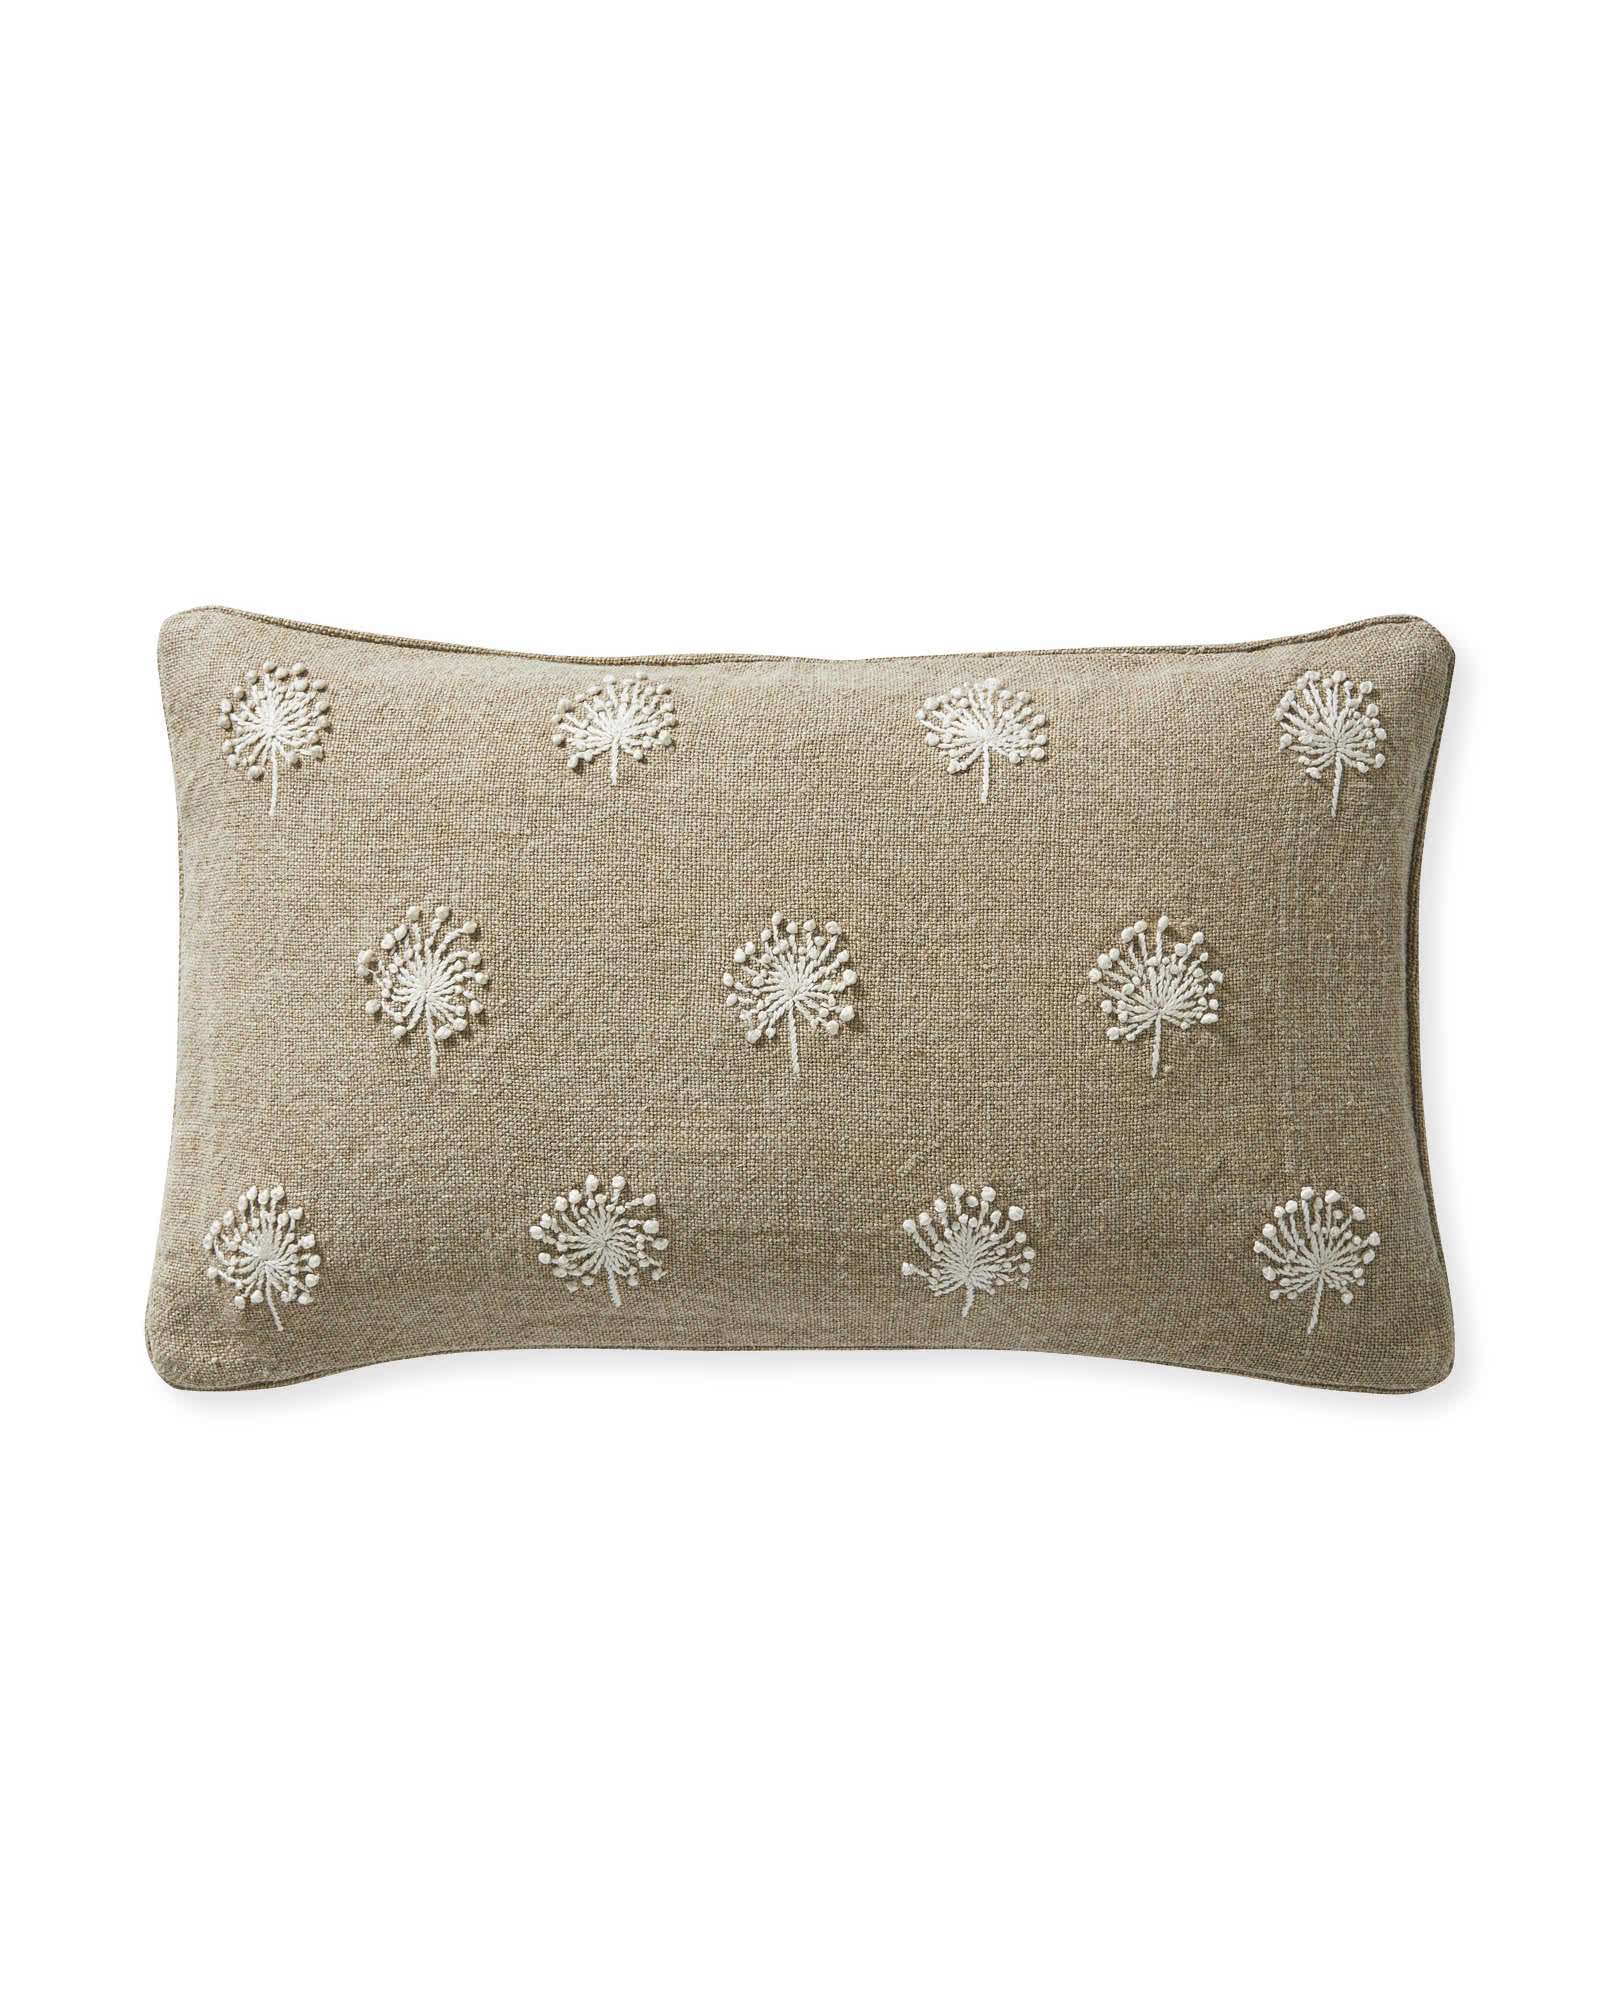 Dandelion Embroidered Pillow Cover, Ivory